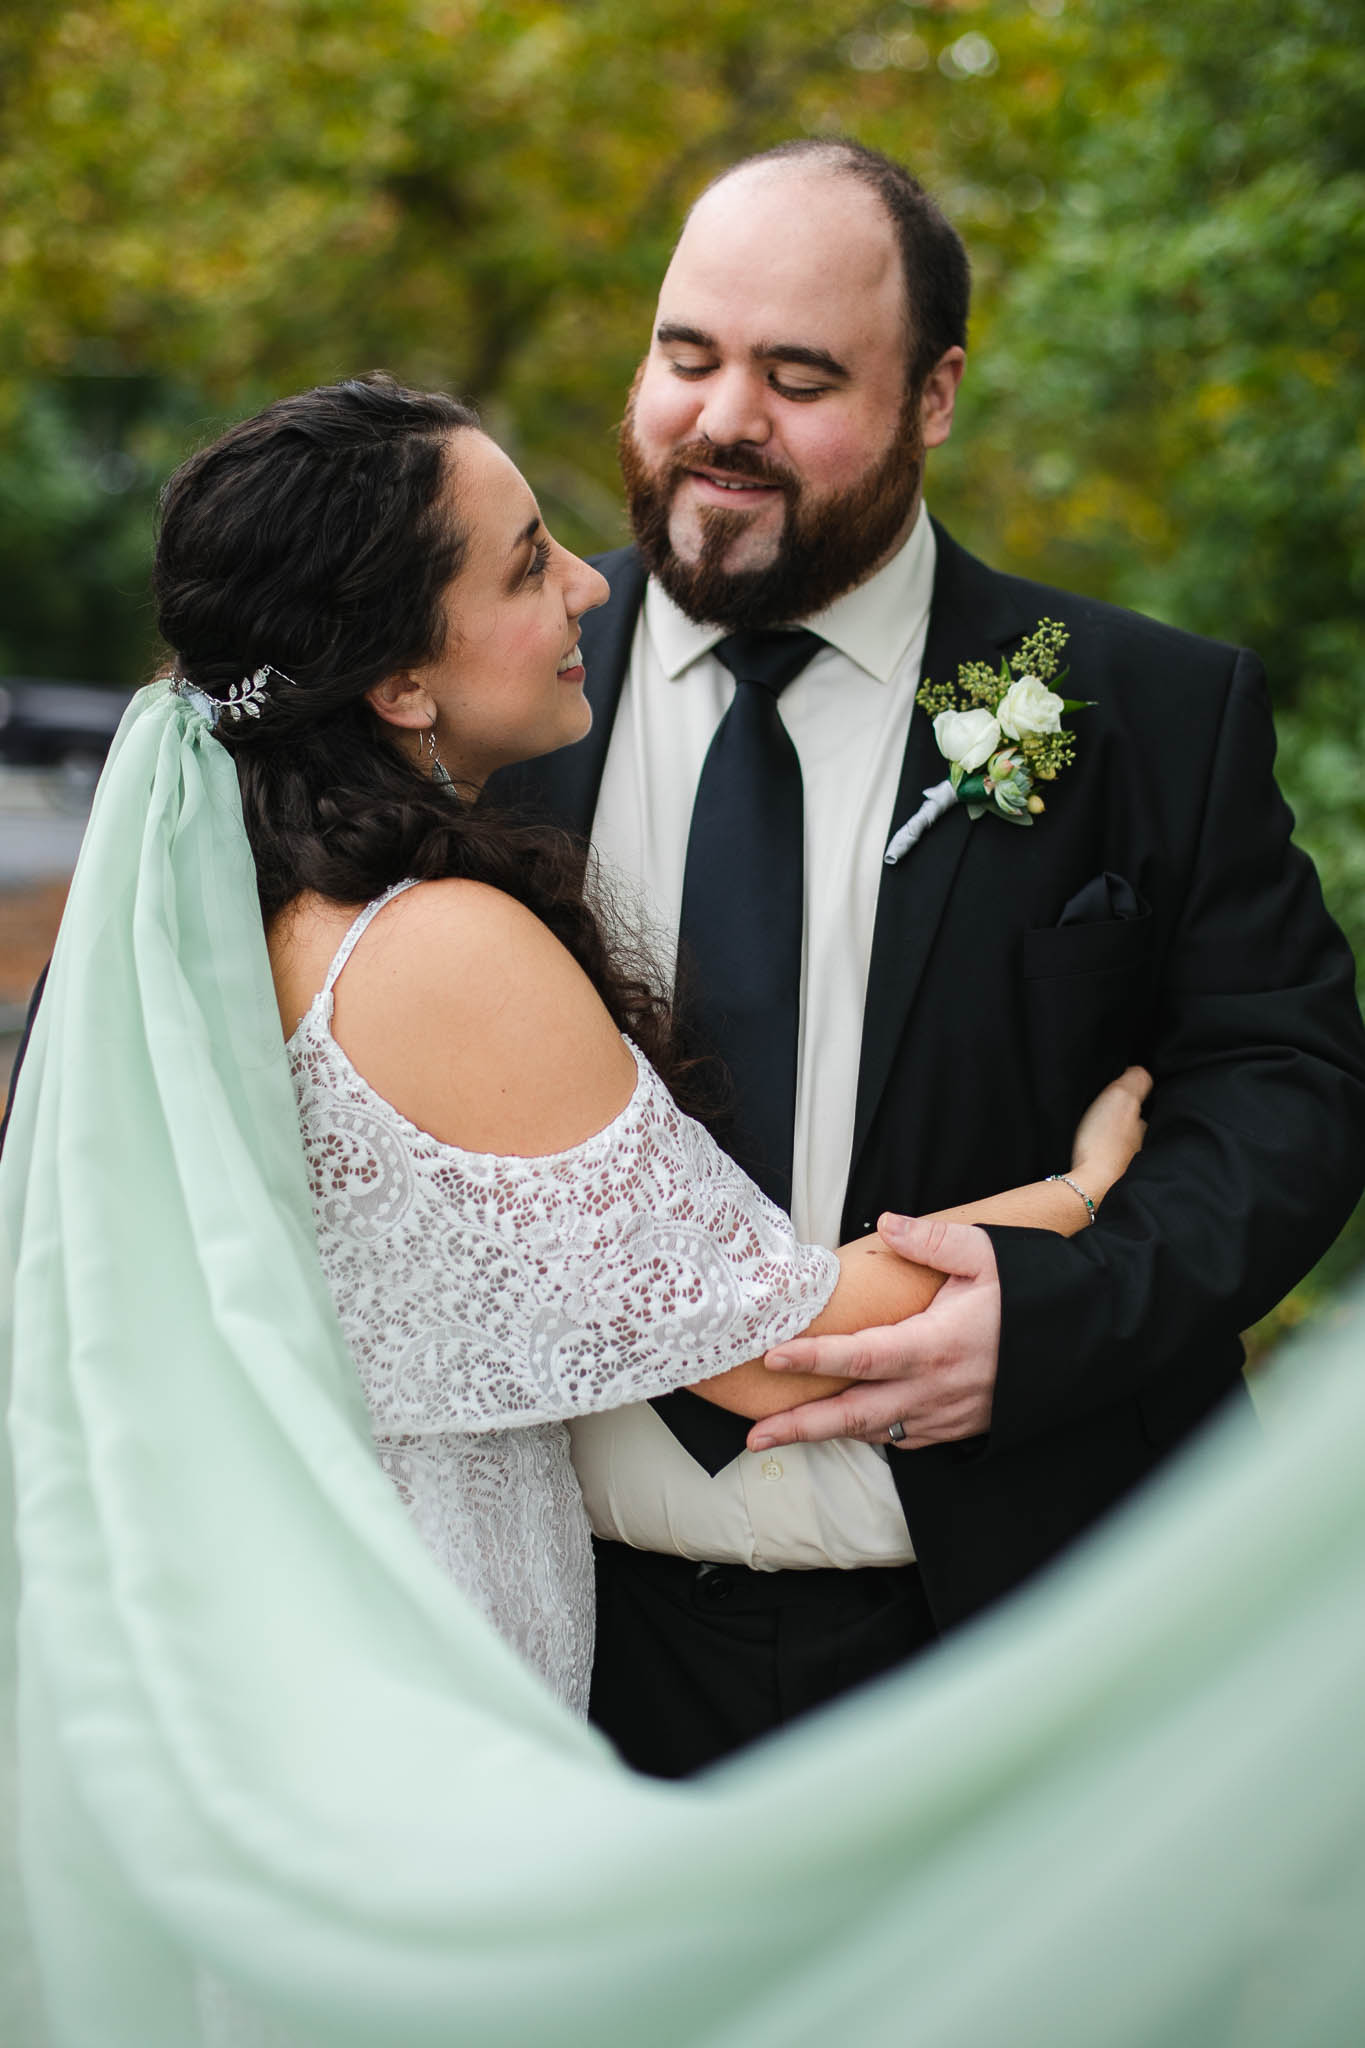 Adriana and Rien - Danielle was amazing to work with from the first moment I contacted her to the day she finished and sent us our wedding album.